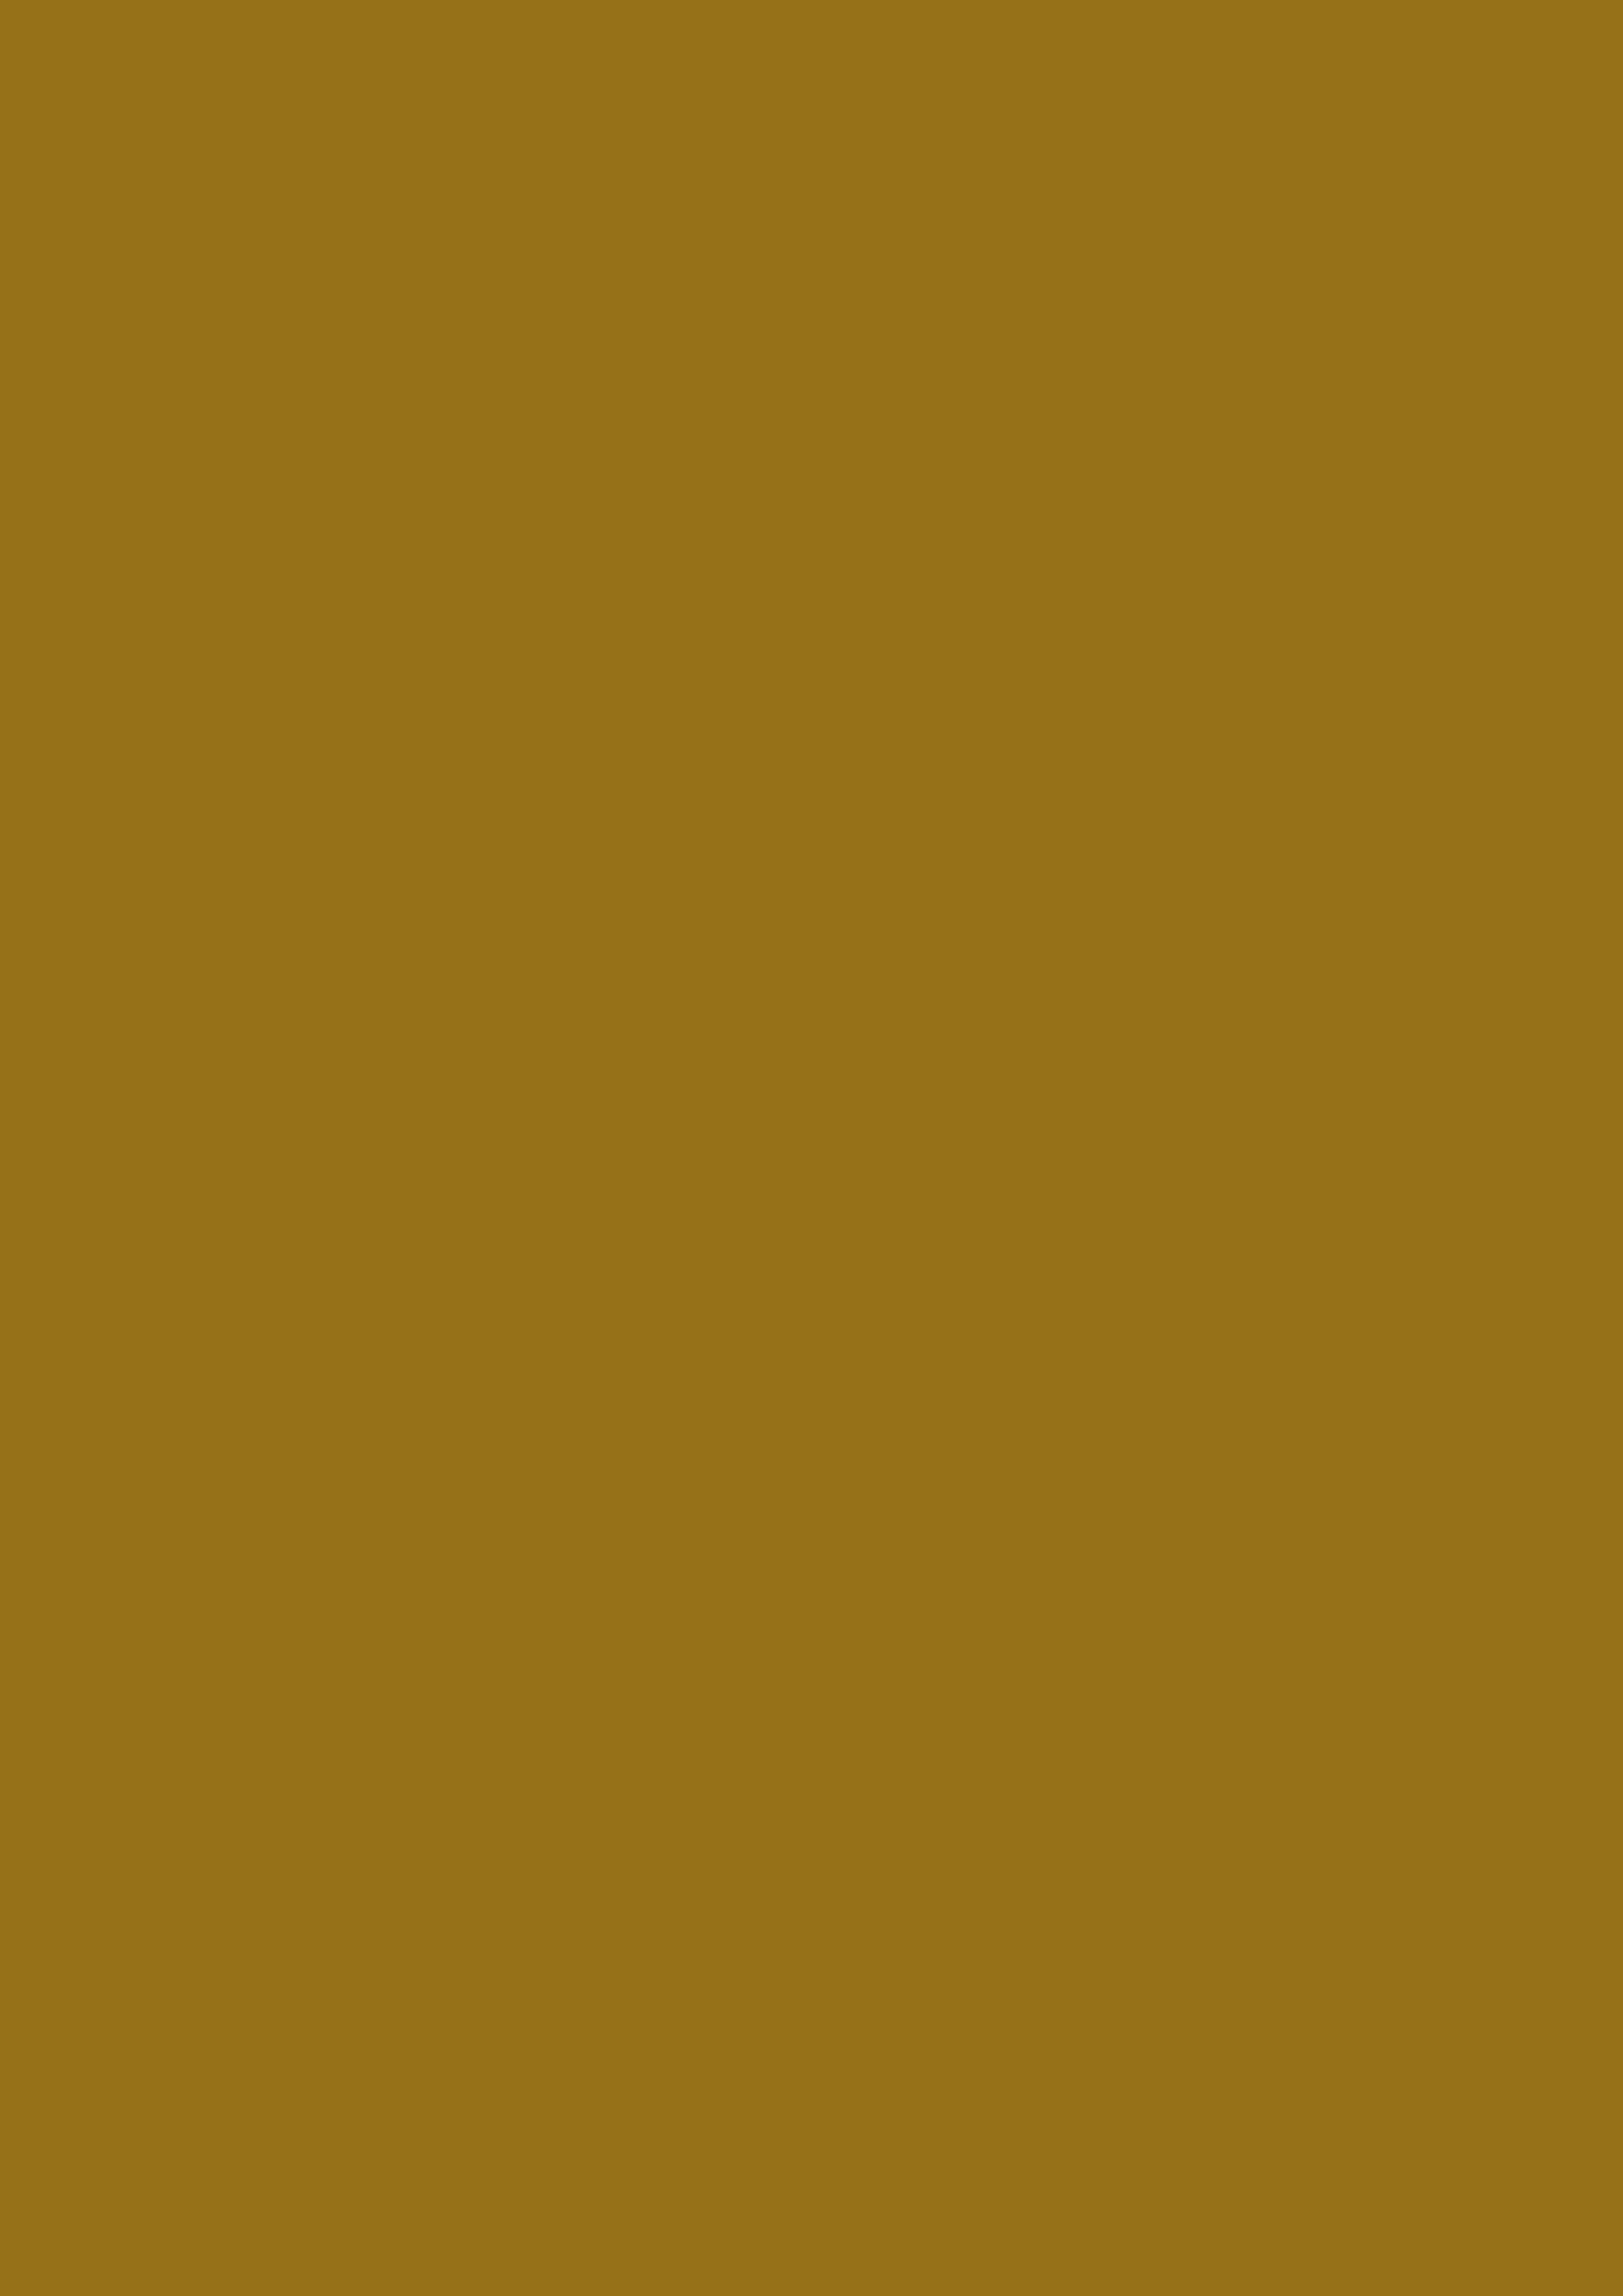 2480x3508 Drab Solid Color Background